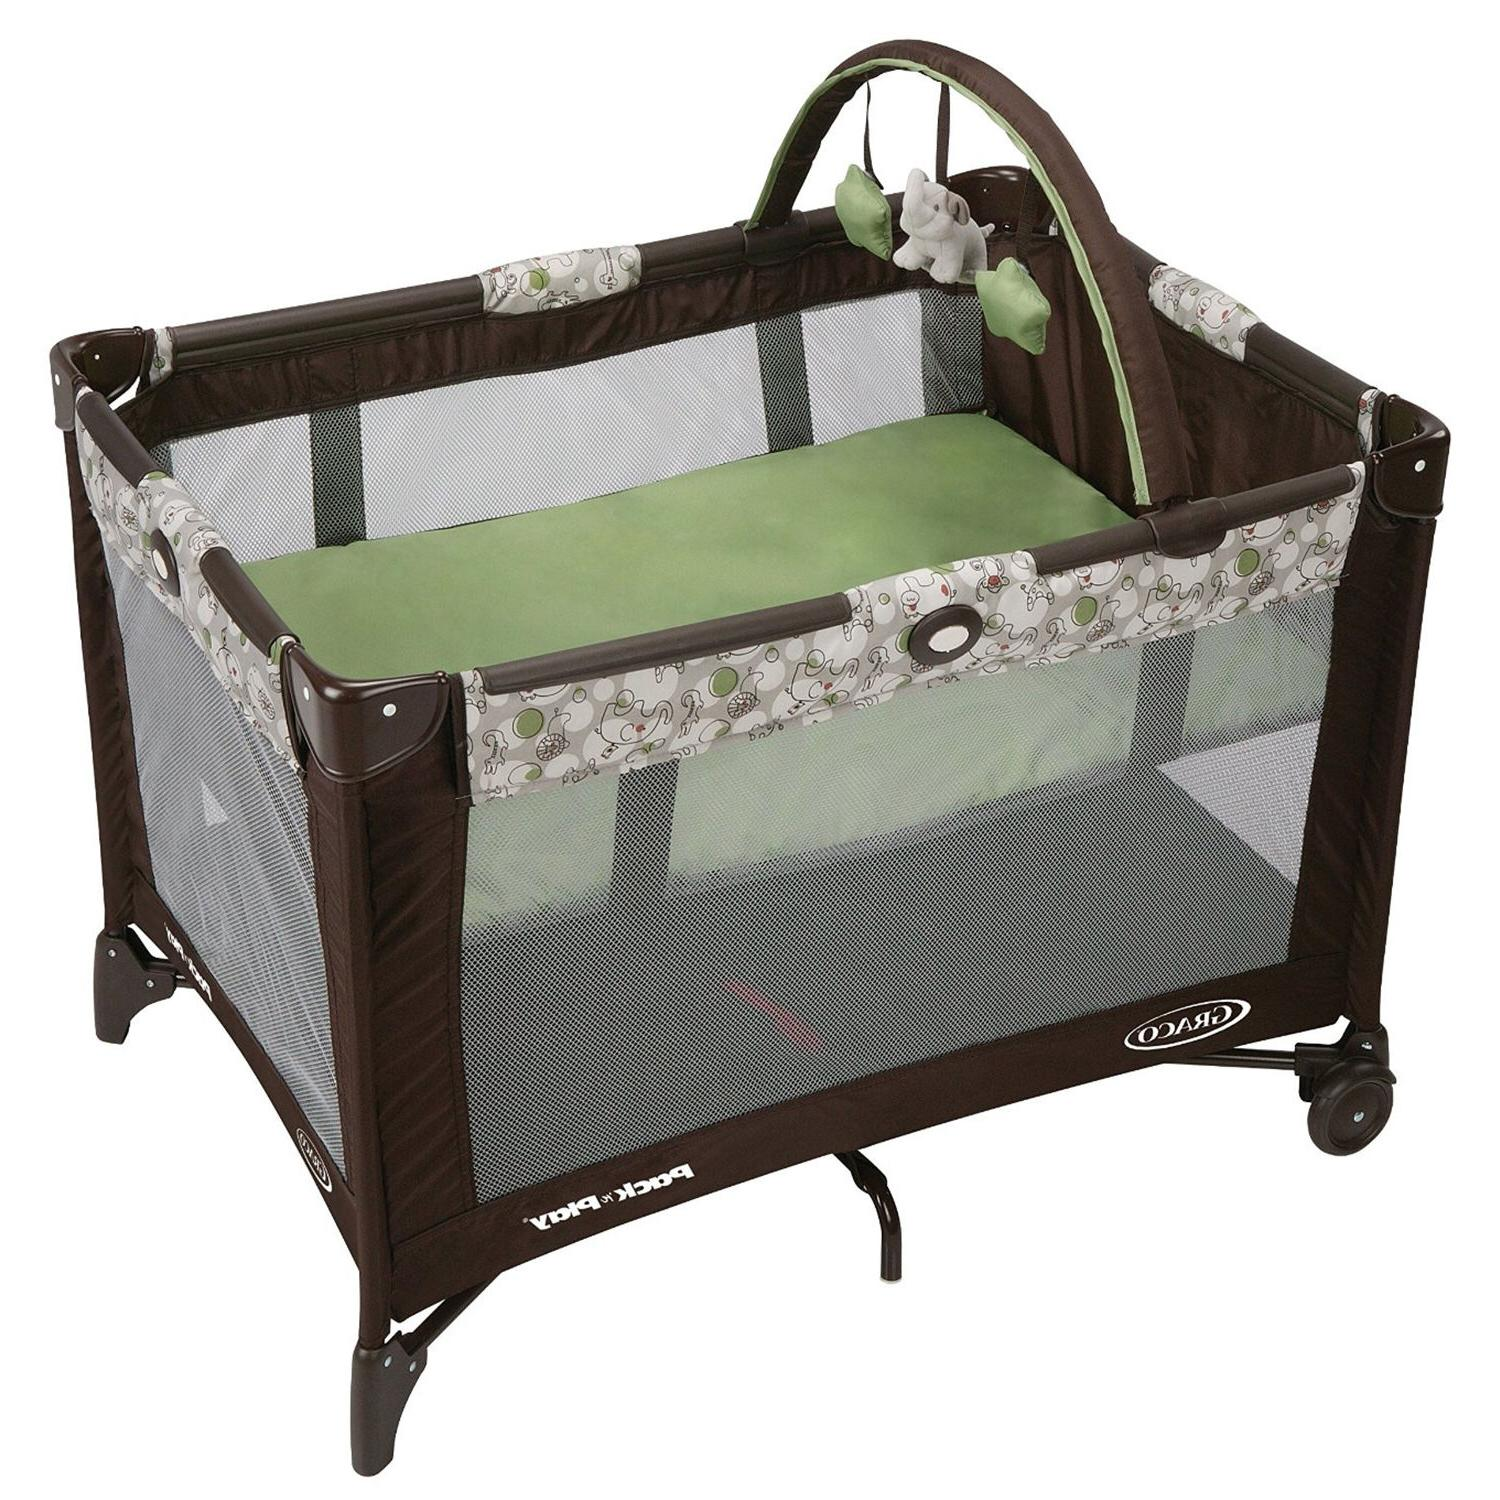 Baby Playard Babysuite Playpen Infant Play Yard Portable Cri